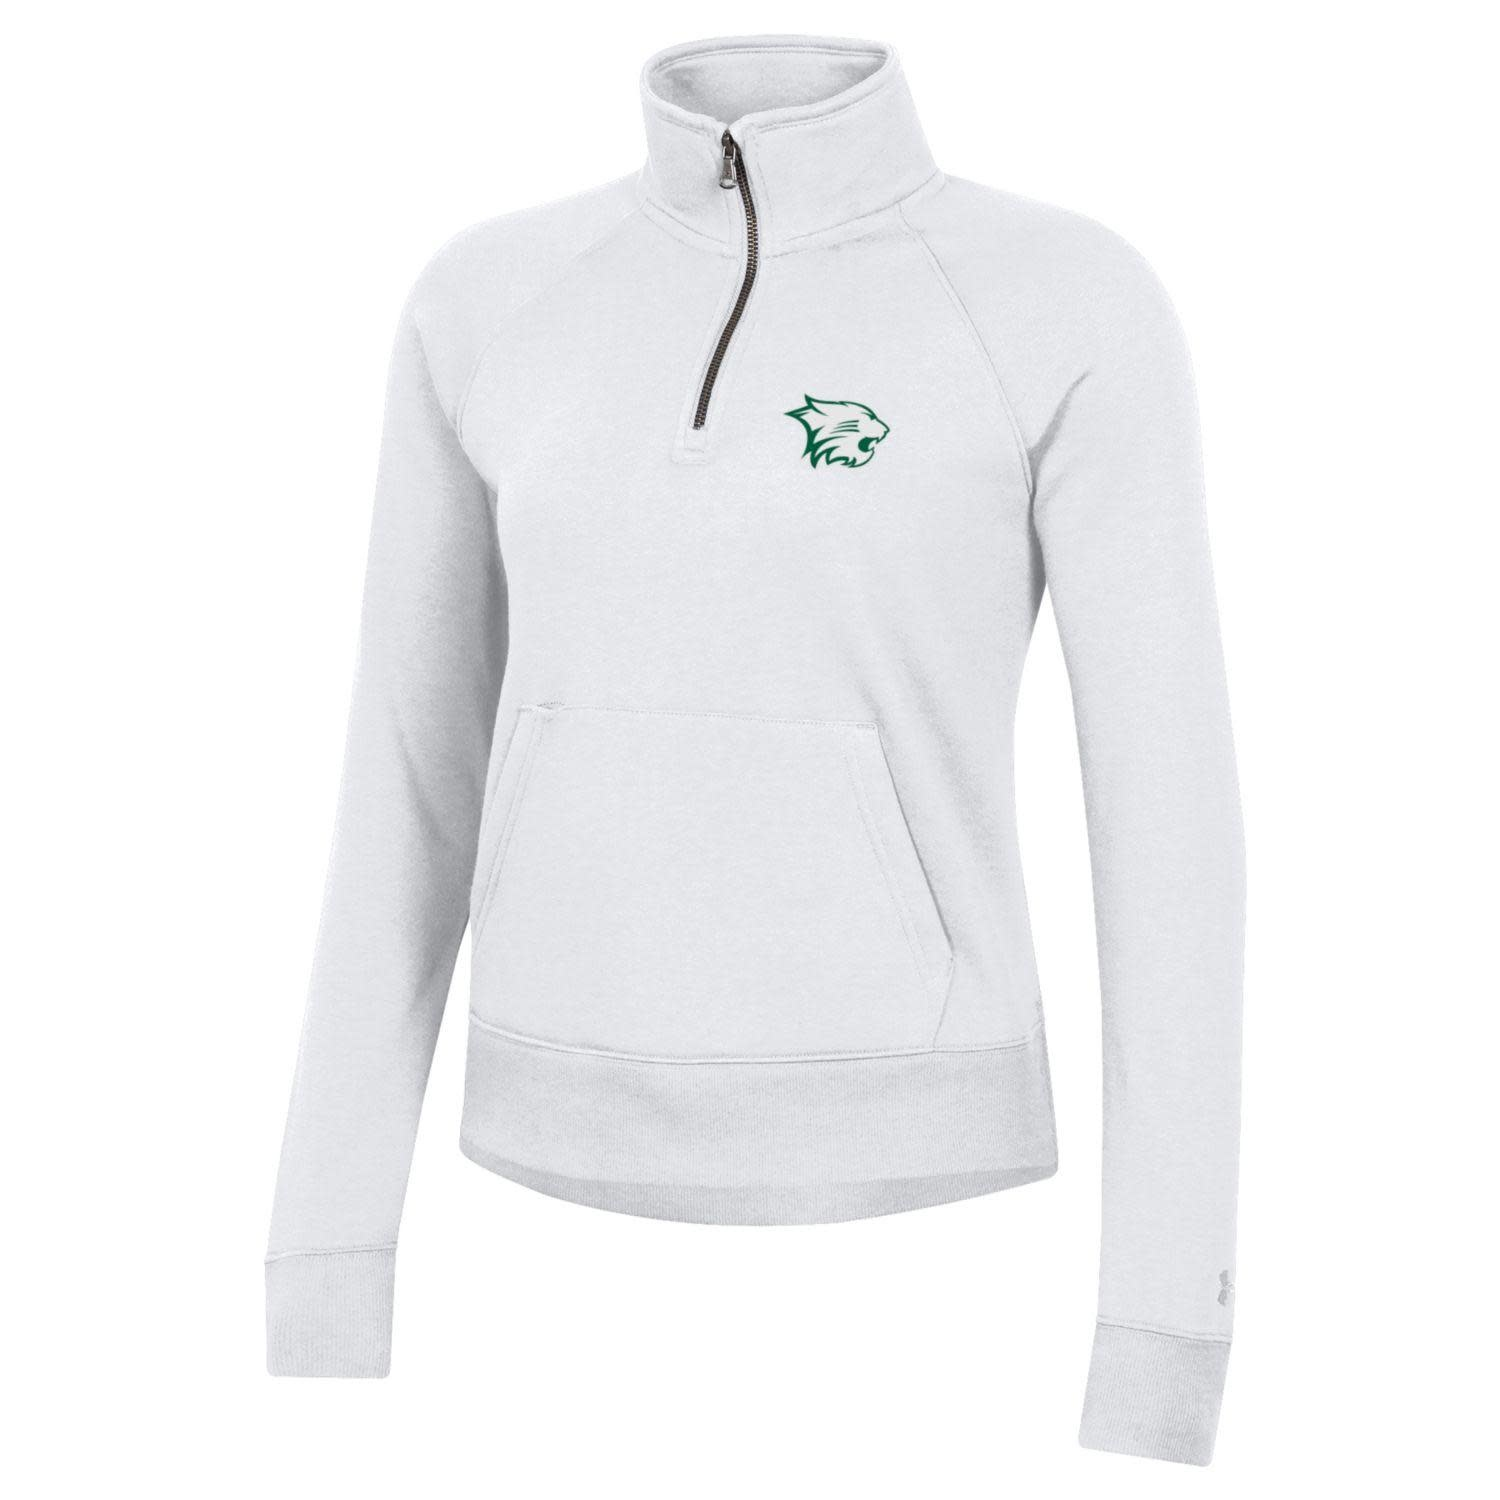 Under Armour Pullover: Womens All Day 1/4 Zip, Wildcat Patch